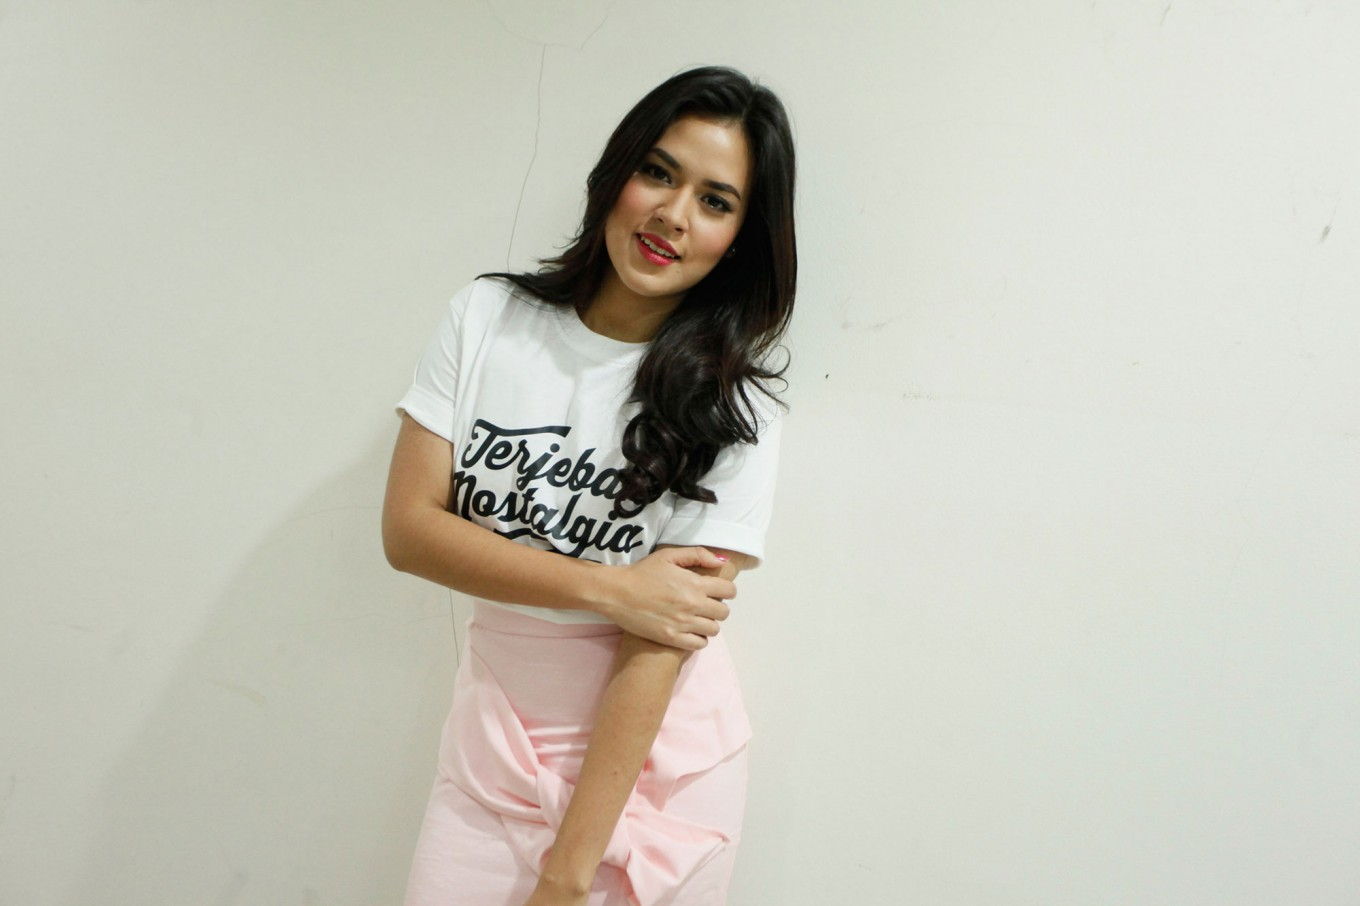 10,000 tickets for Raisa Live in Concert sold out within 14 hours